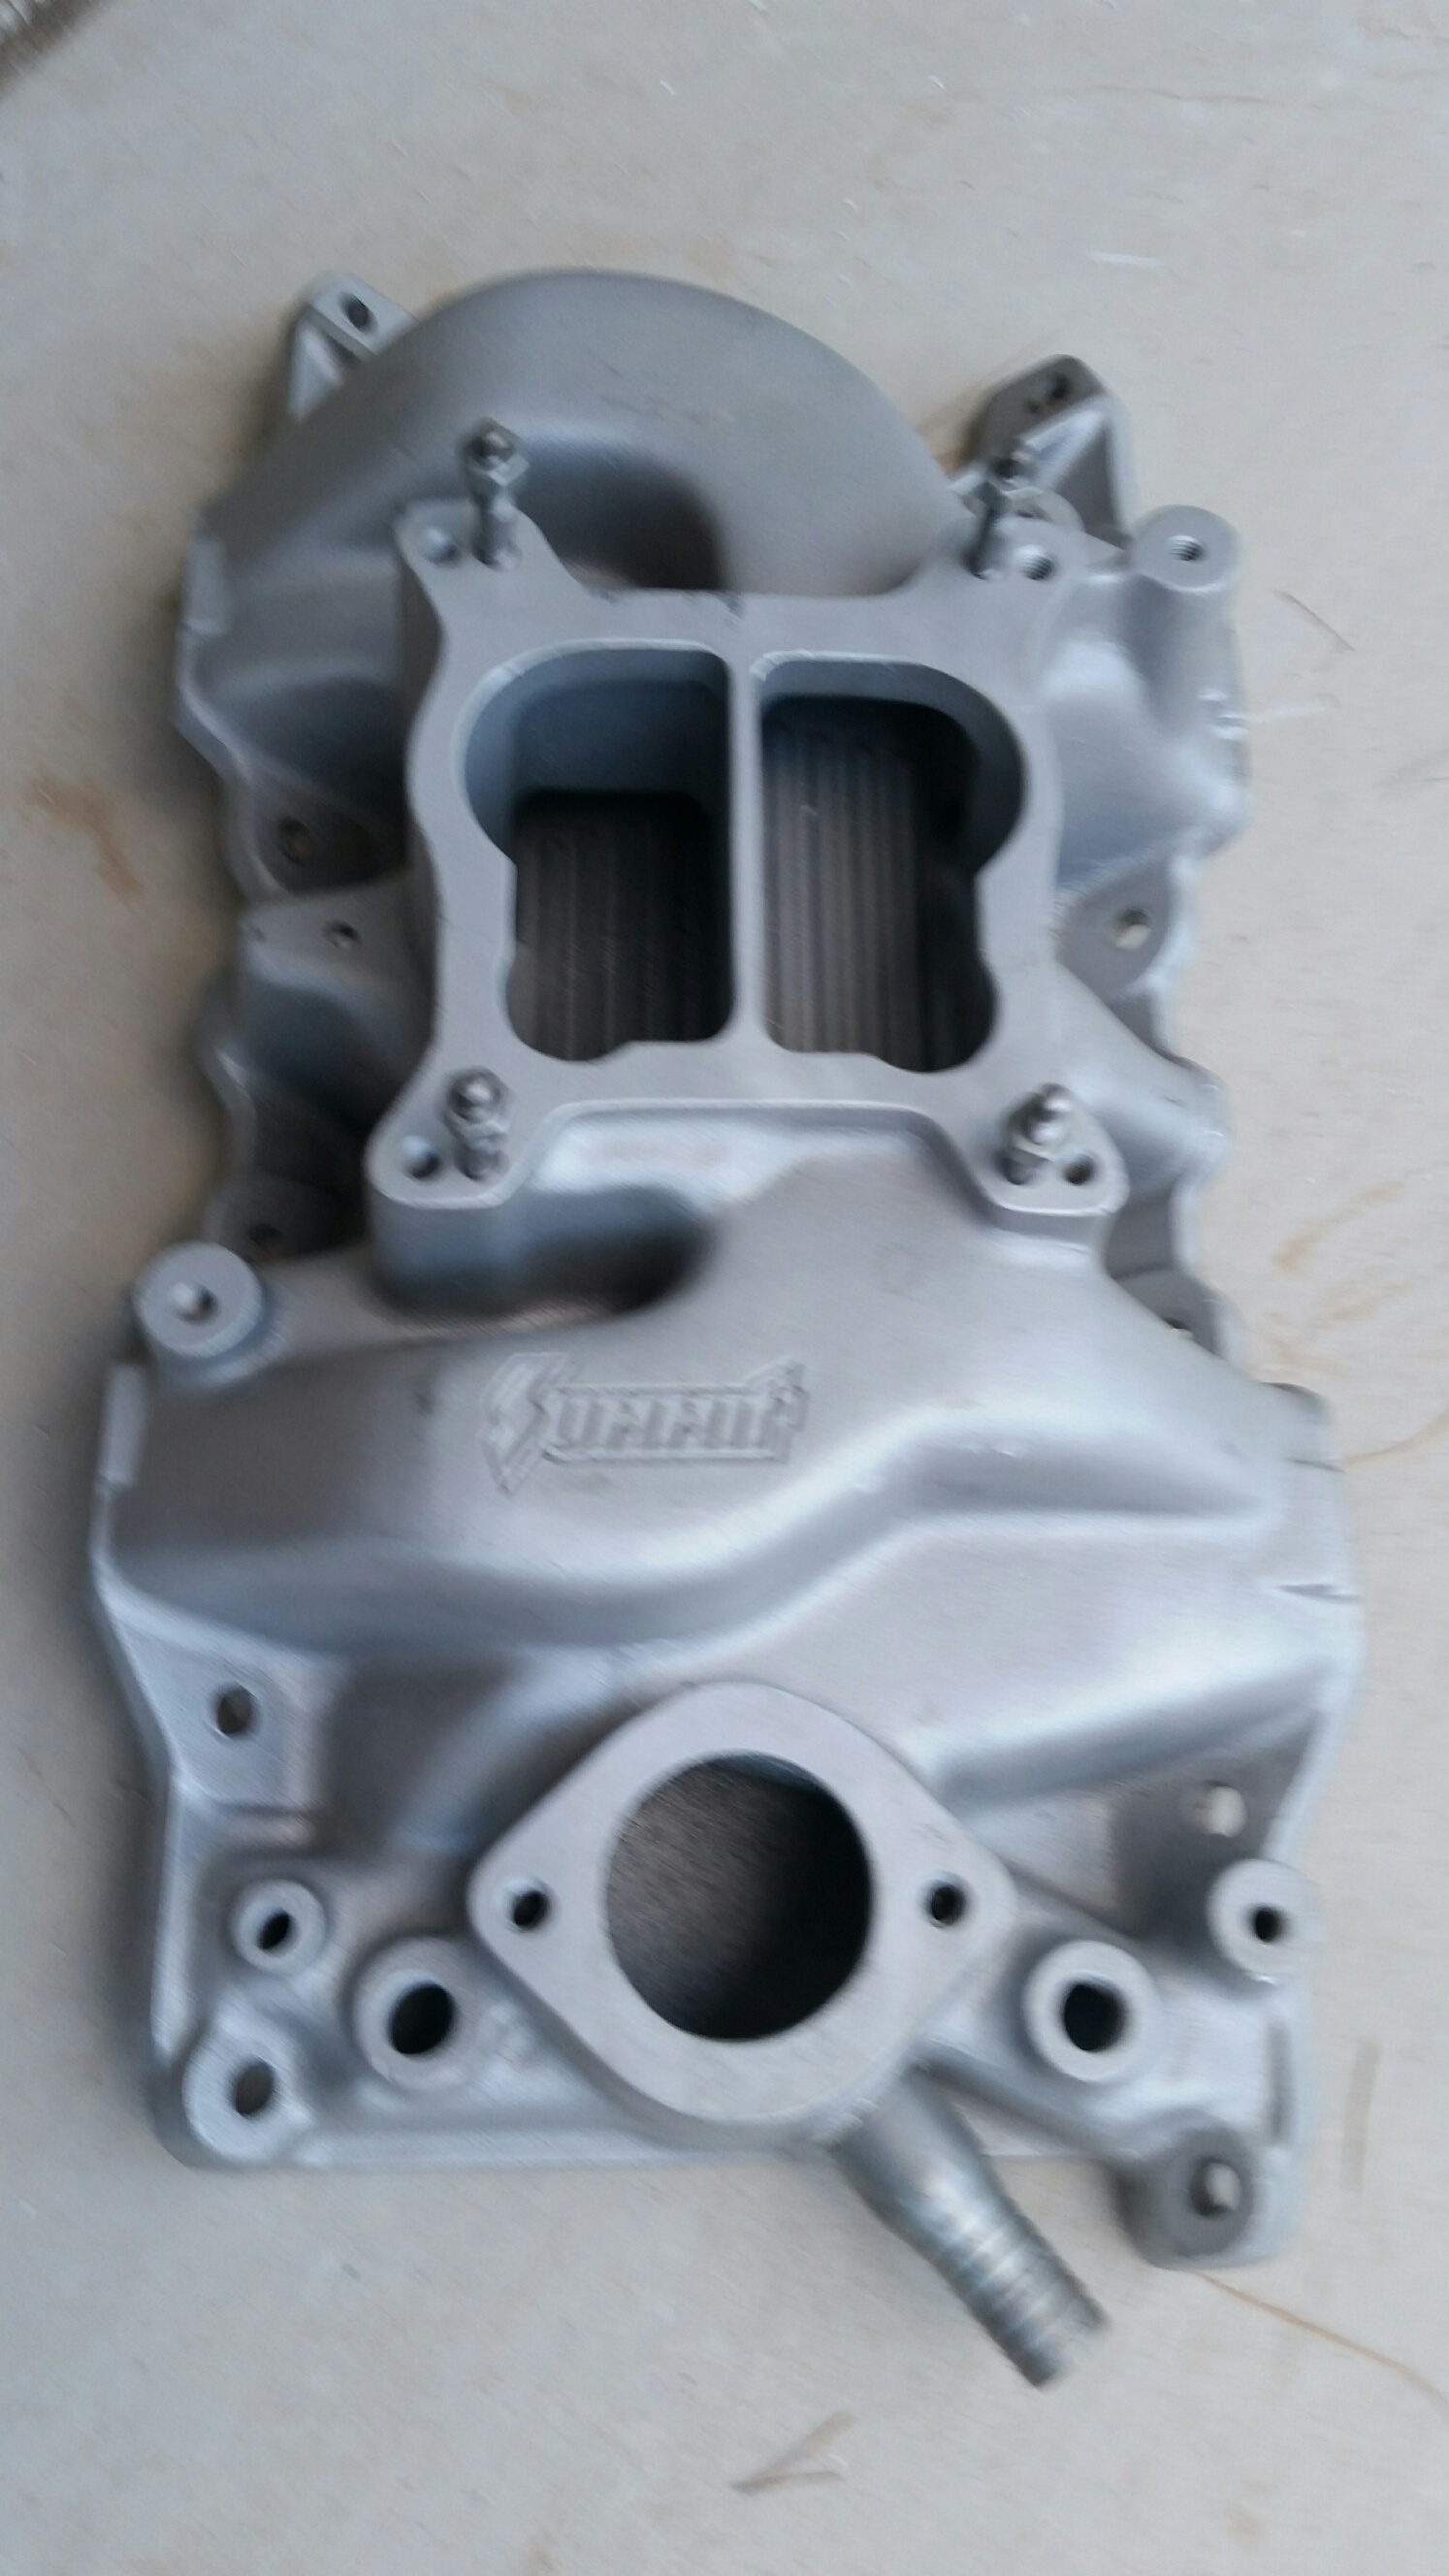 Sold summitt brand small block intake manifold for a